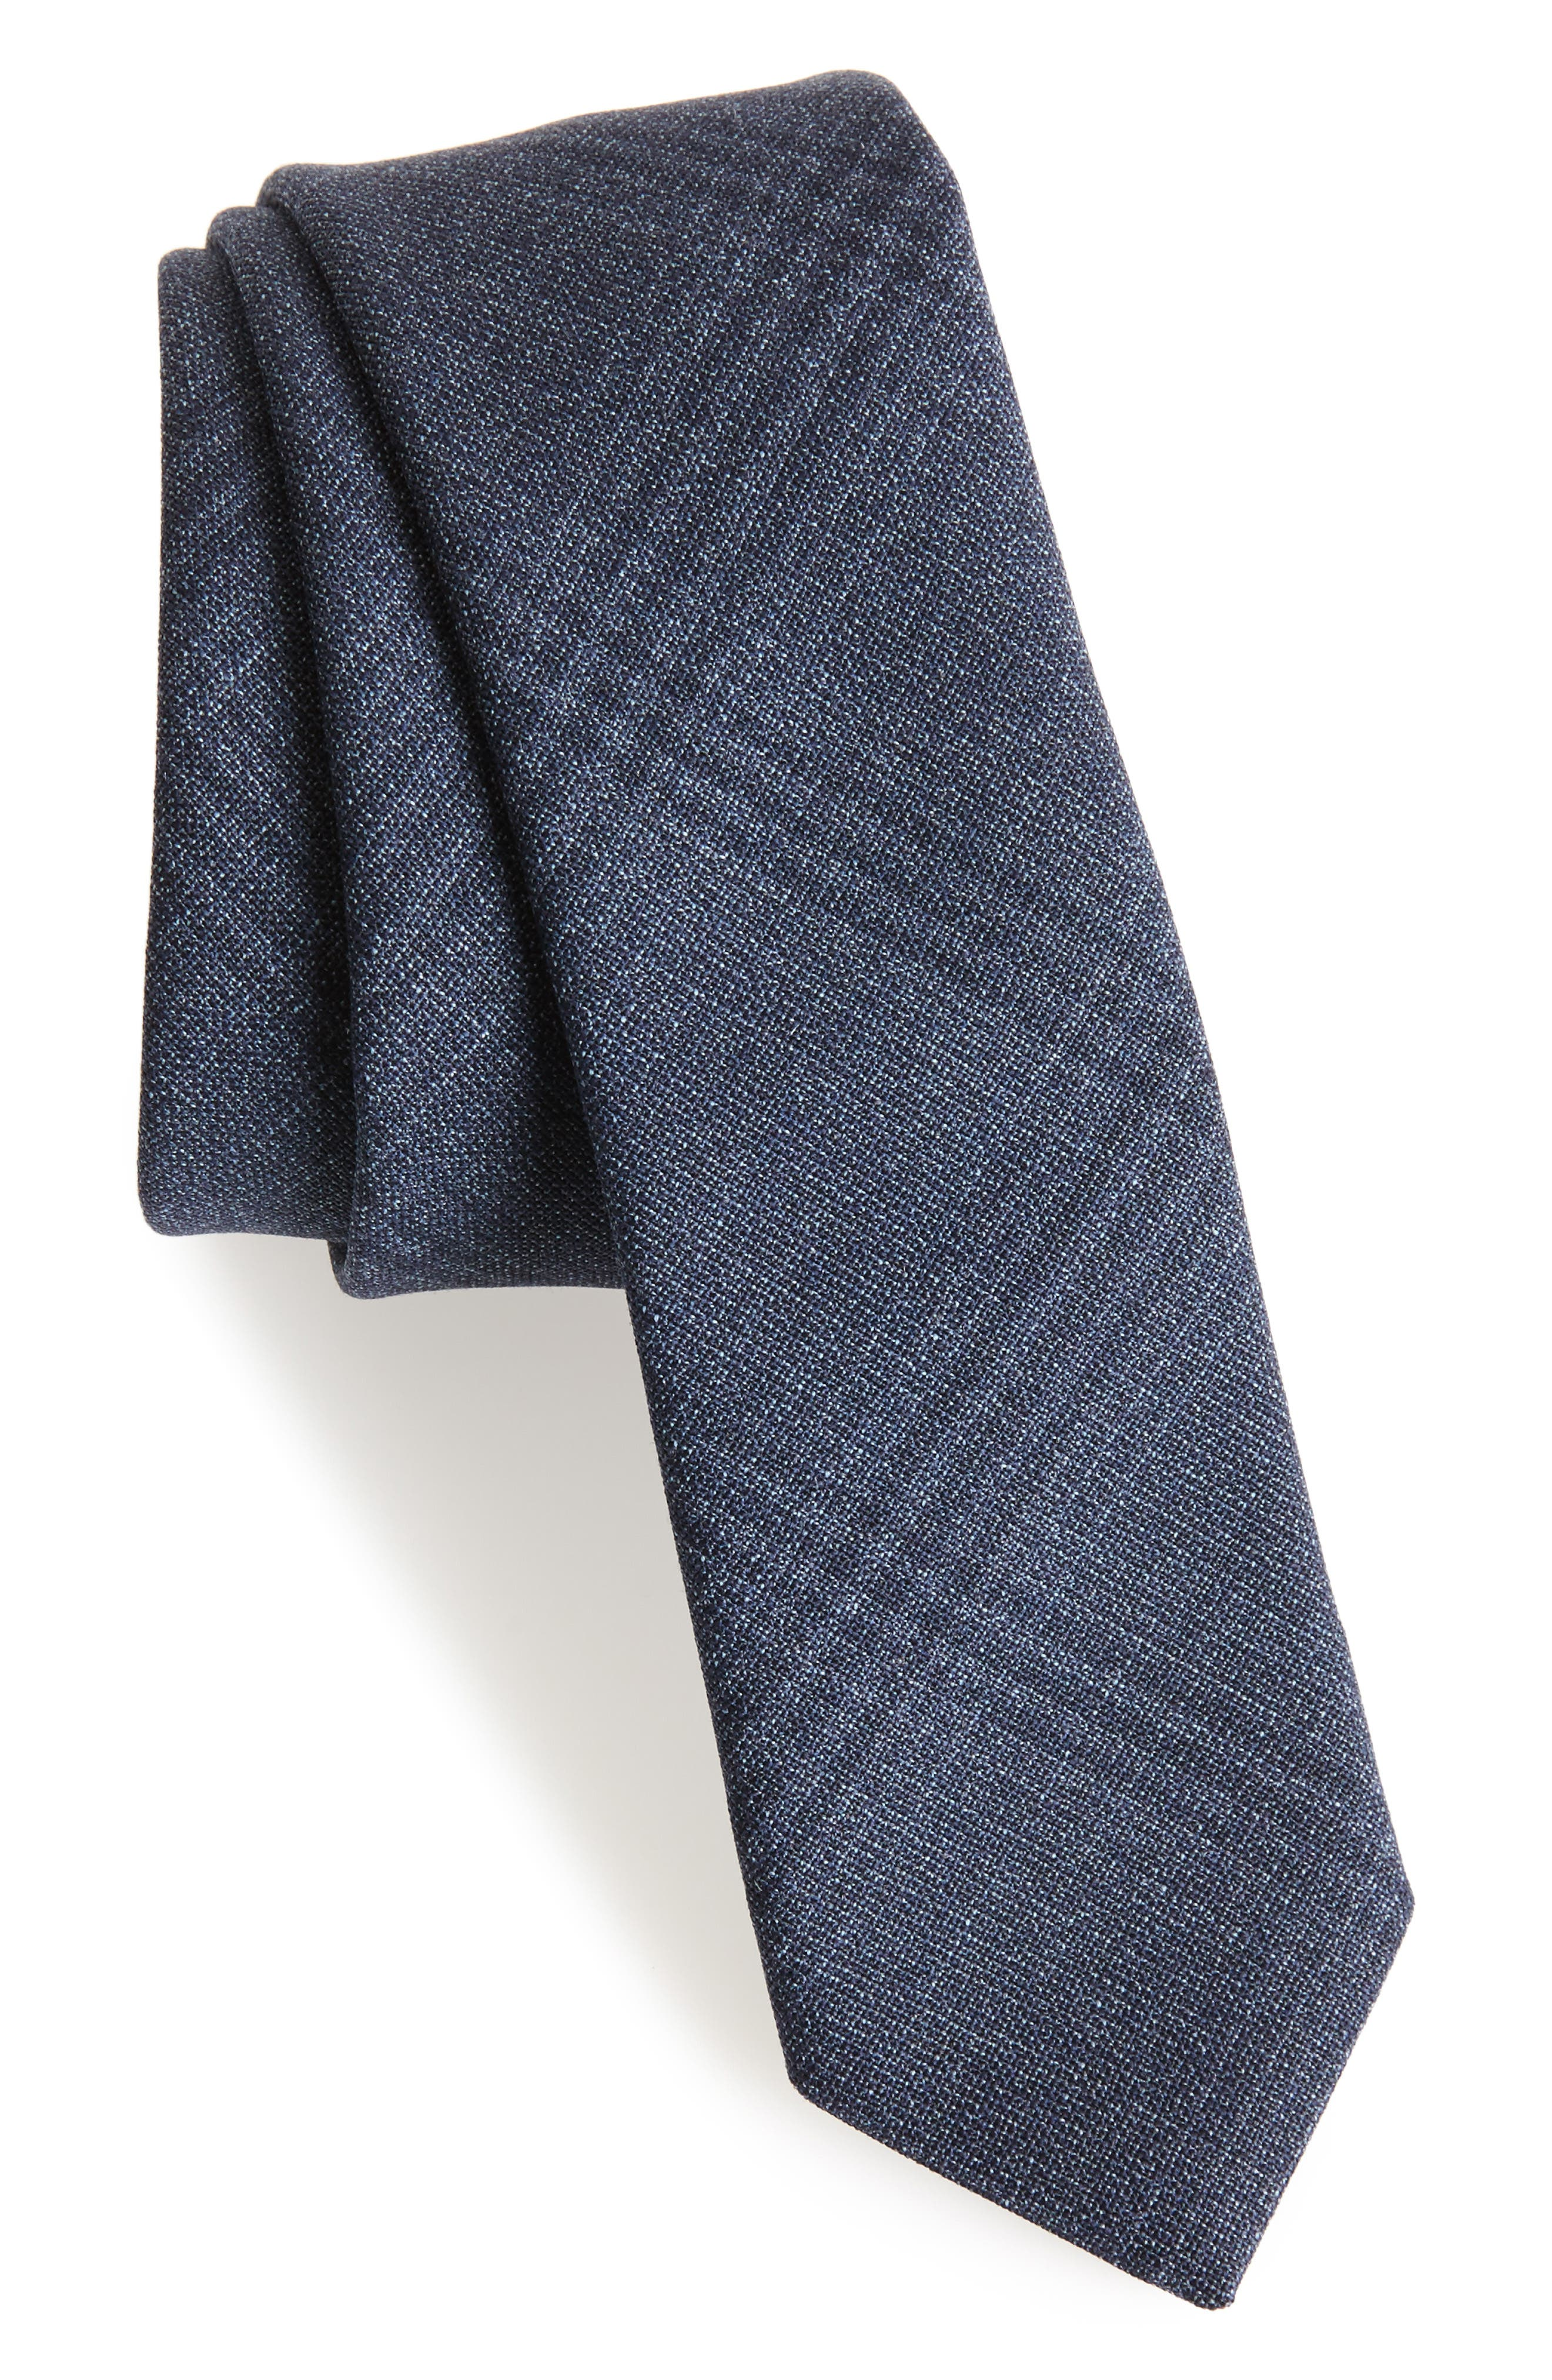 Plaid Wool Tie,                         Main,                         color, 031